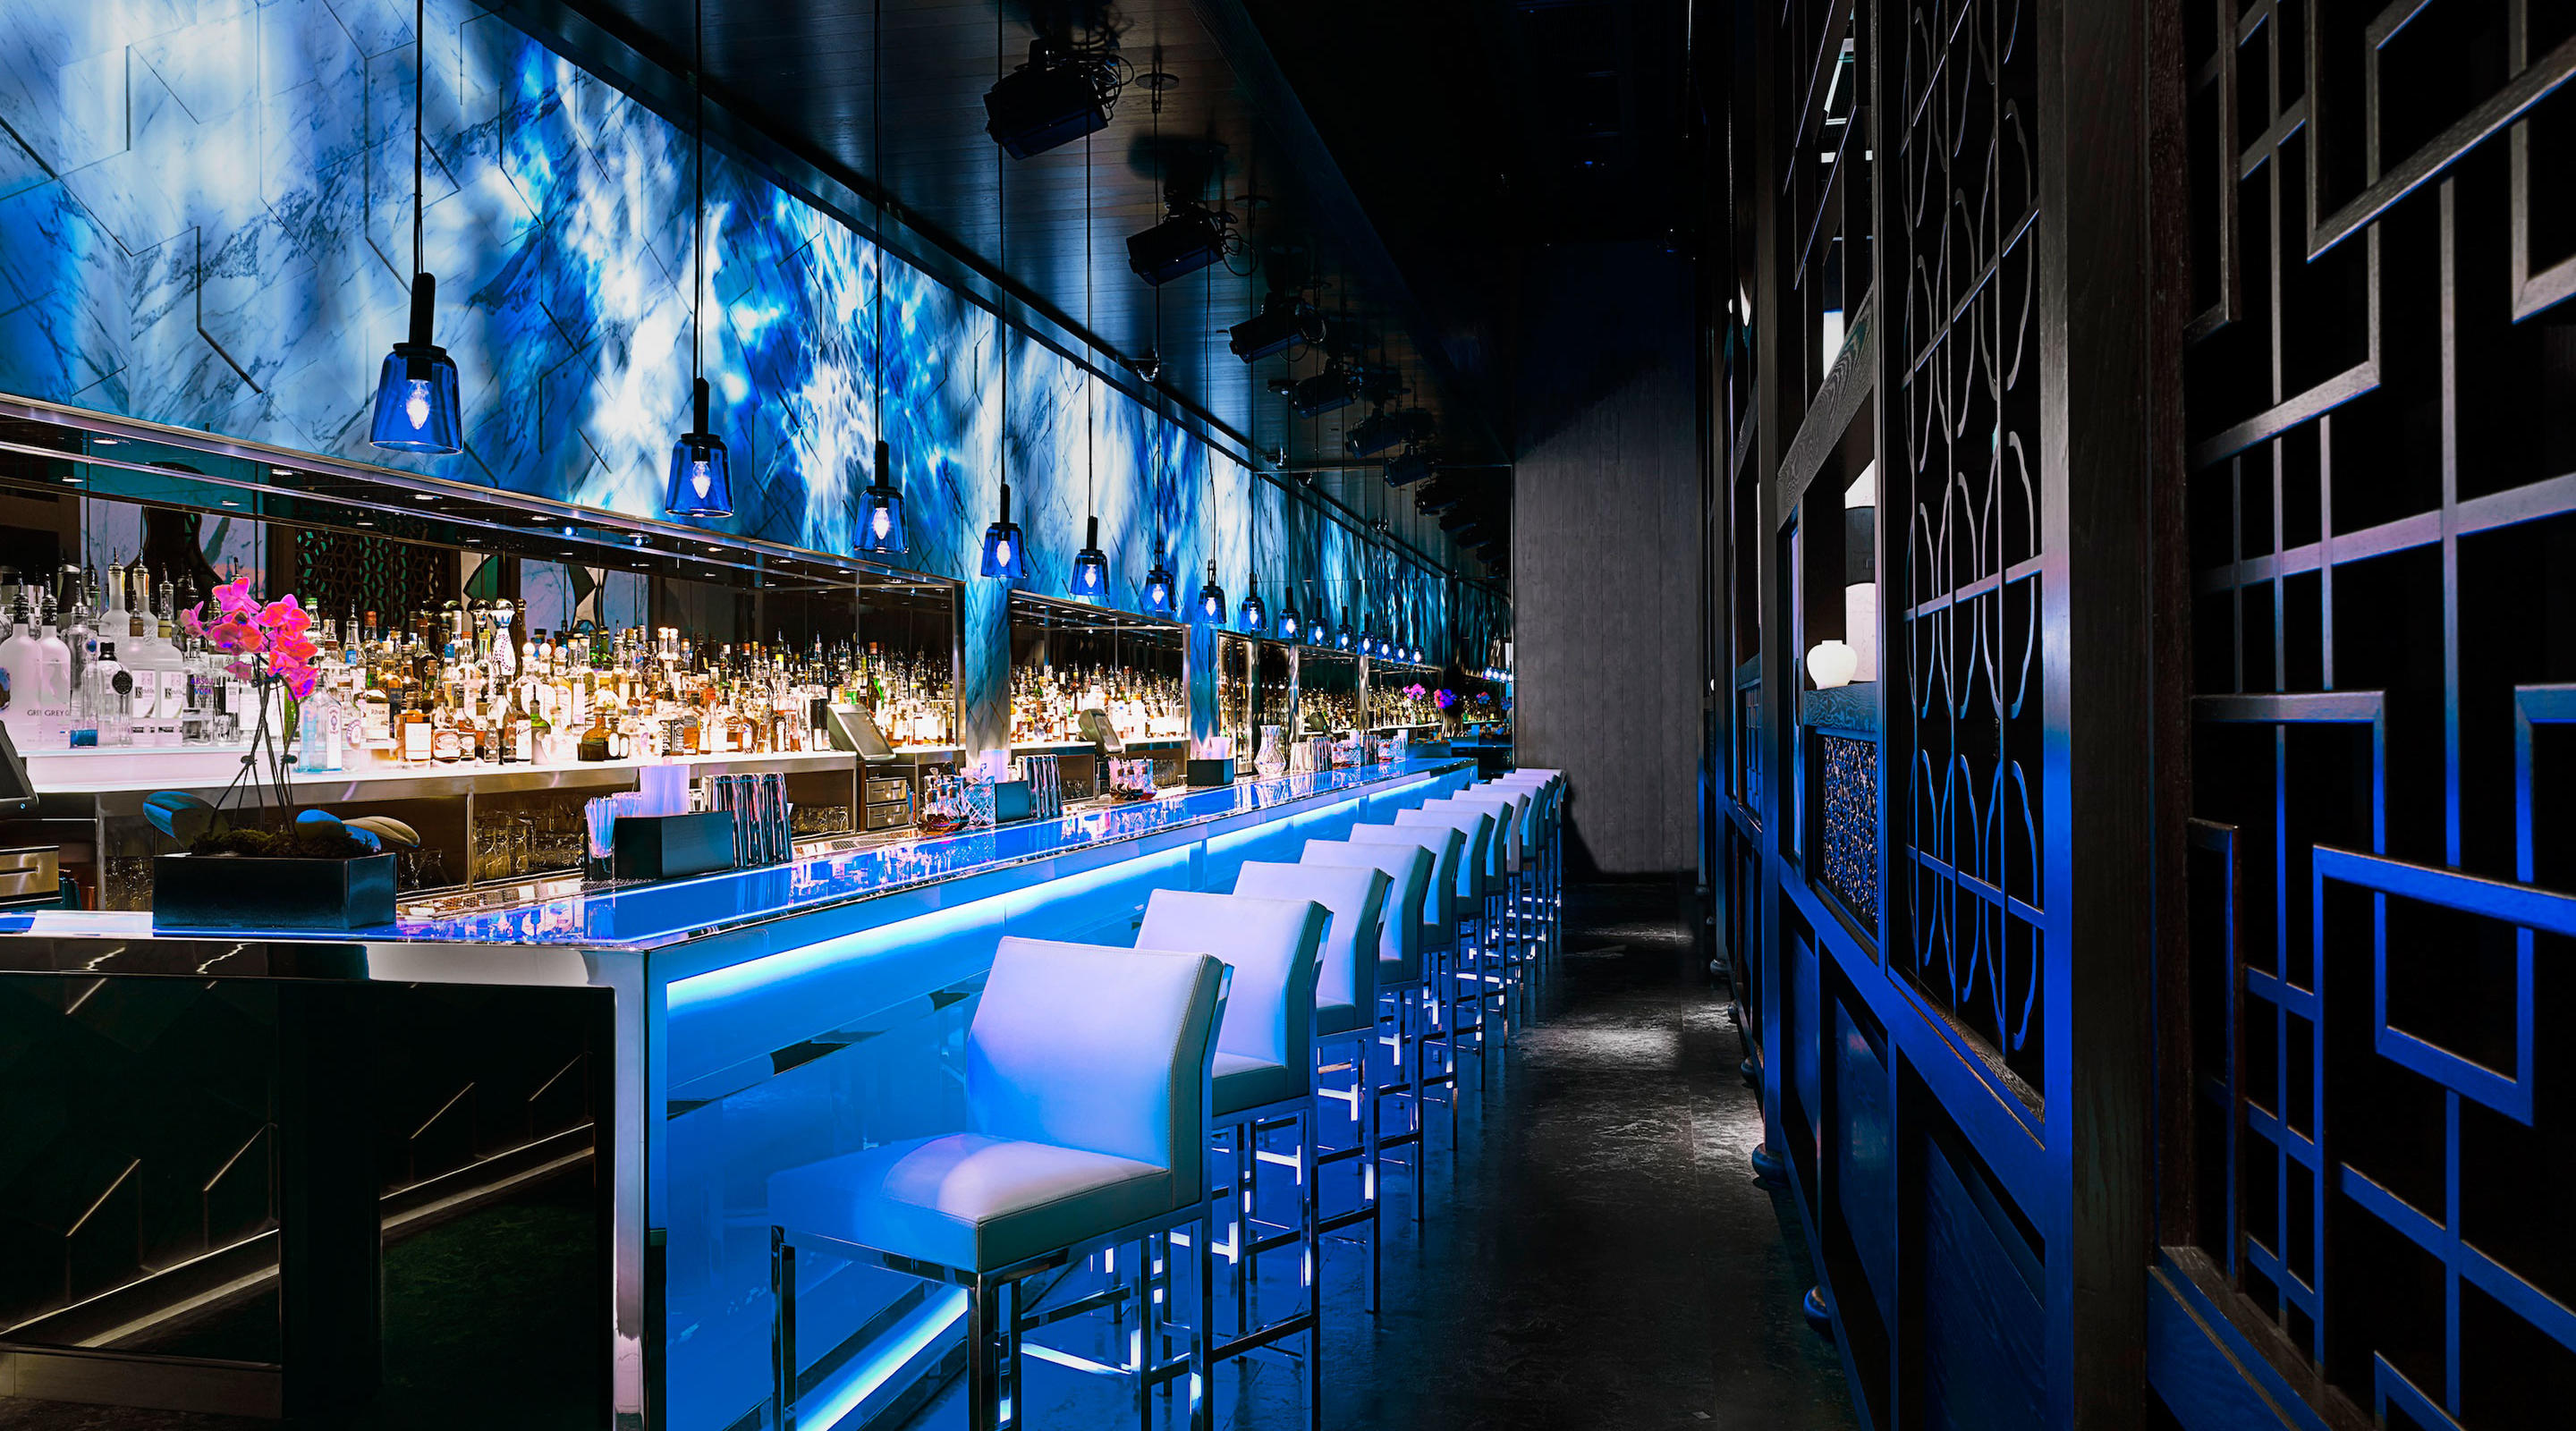 A side view of the Hakkasan Restaurant Bar at MGM Grand